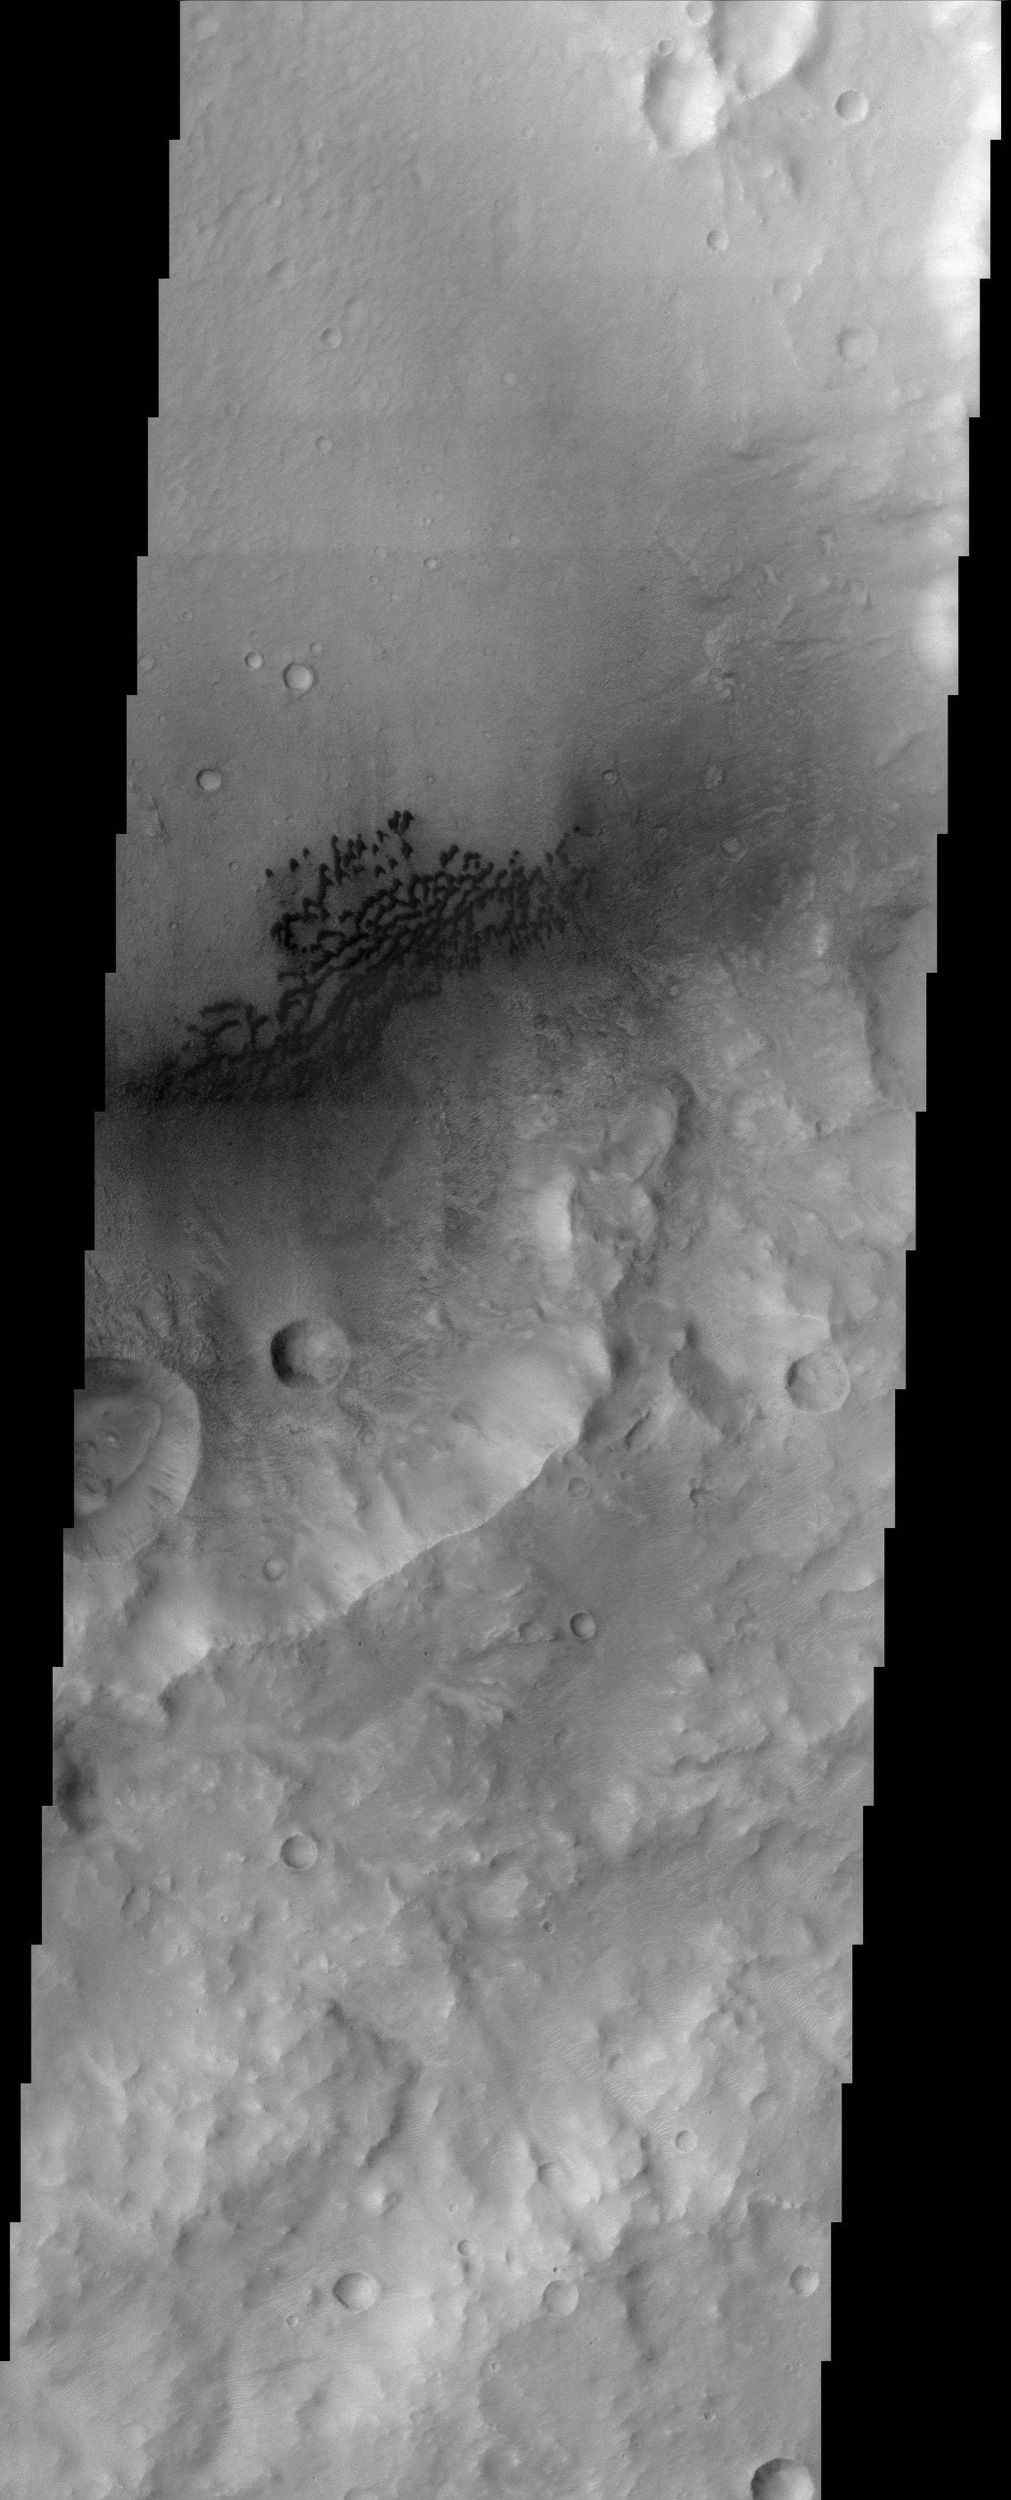 This image from NASA's Mars Odyssey spacecraft shows the eastern portion of a region on Mars called Hesperia Planum. Immediately visible in the image is the dark barchan type dunes that are being blown against the southeast wall of the crater.